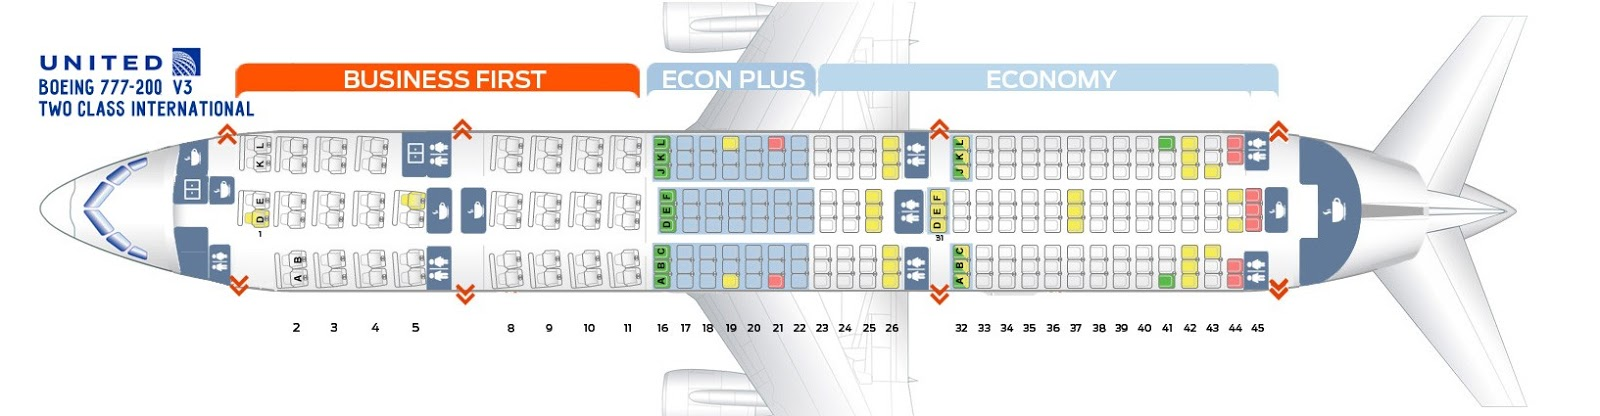 ✓ New United Boeing 777-200 Seat Map - Seat Inspiration  Seat Map on 777 seat plan, 777 seat diagram, delta a380 seating map, 777 seat profile, 777 seat configuration,